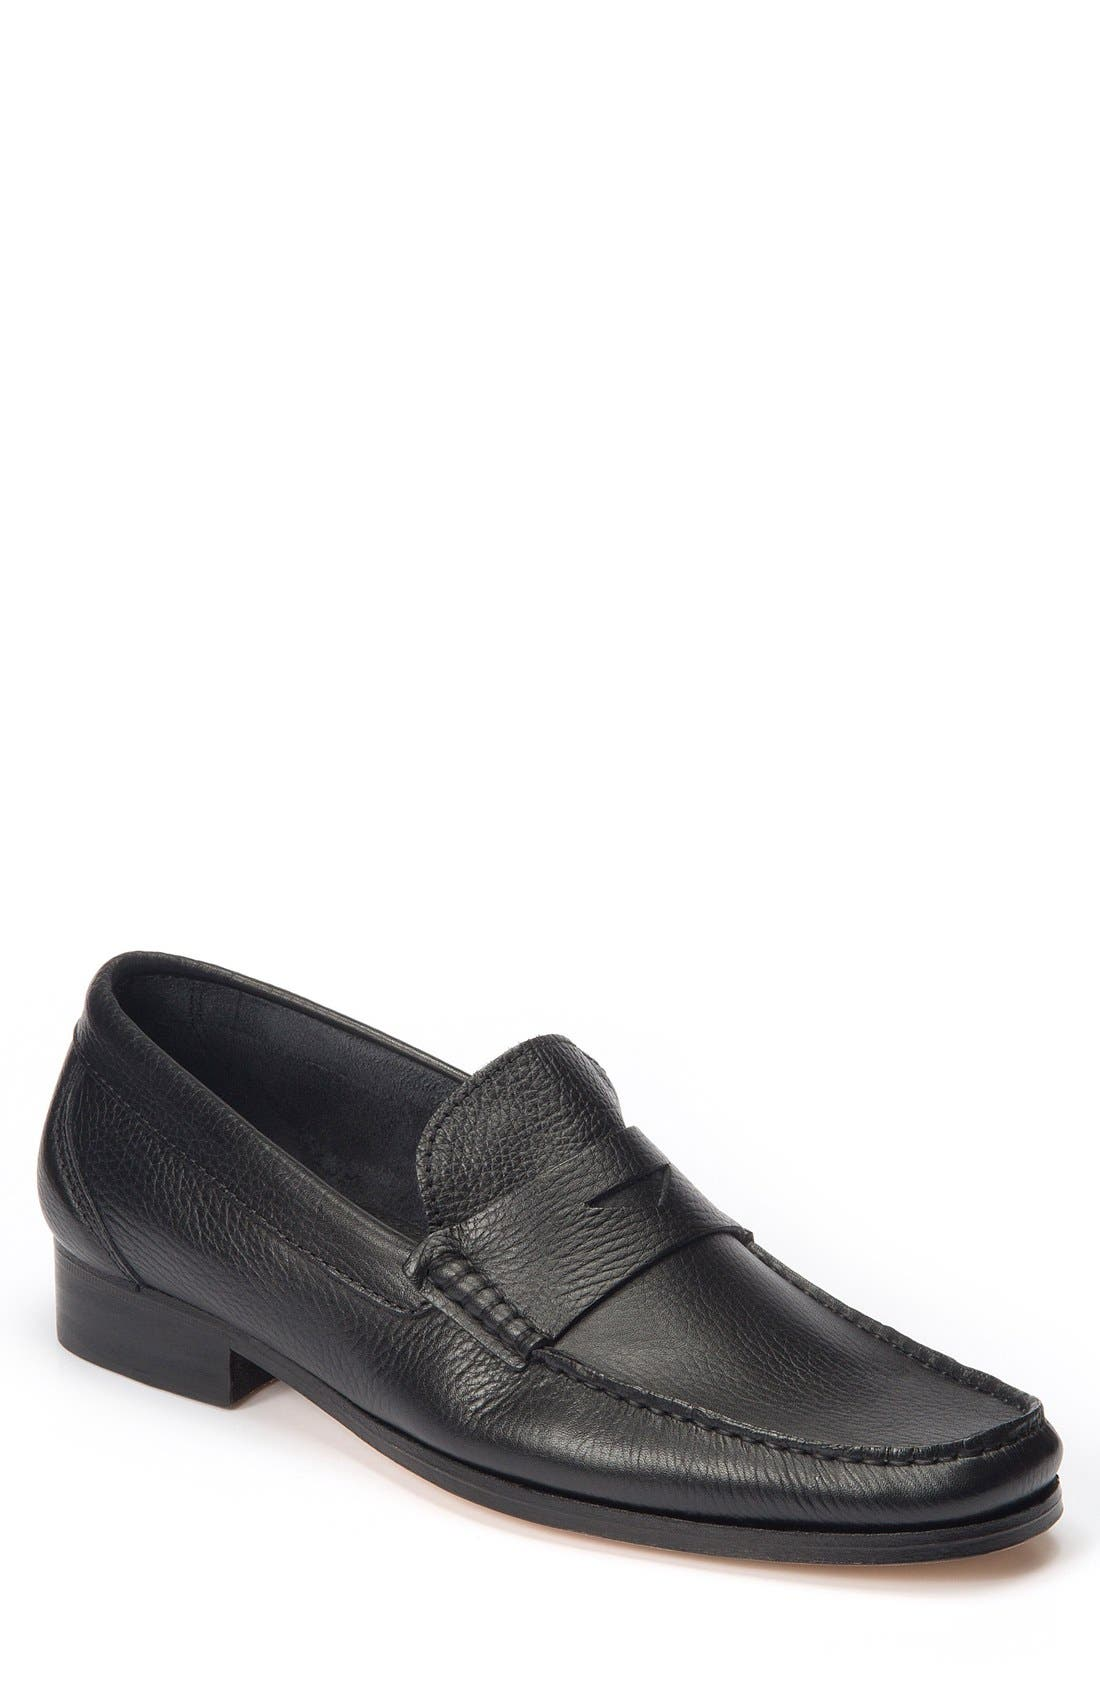 Segovia Penny Loafer,                         Main,                         color, BLACK LEATHER